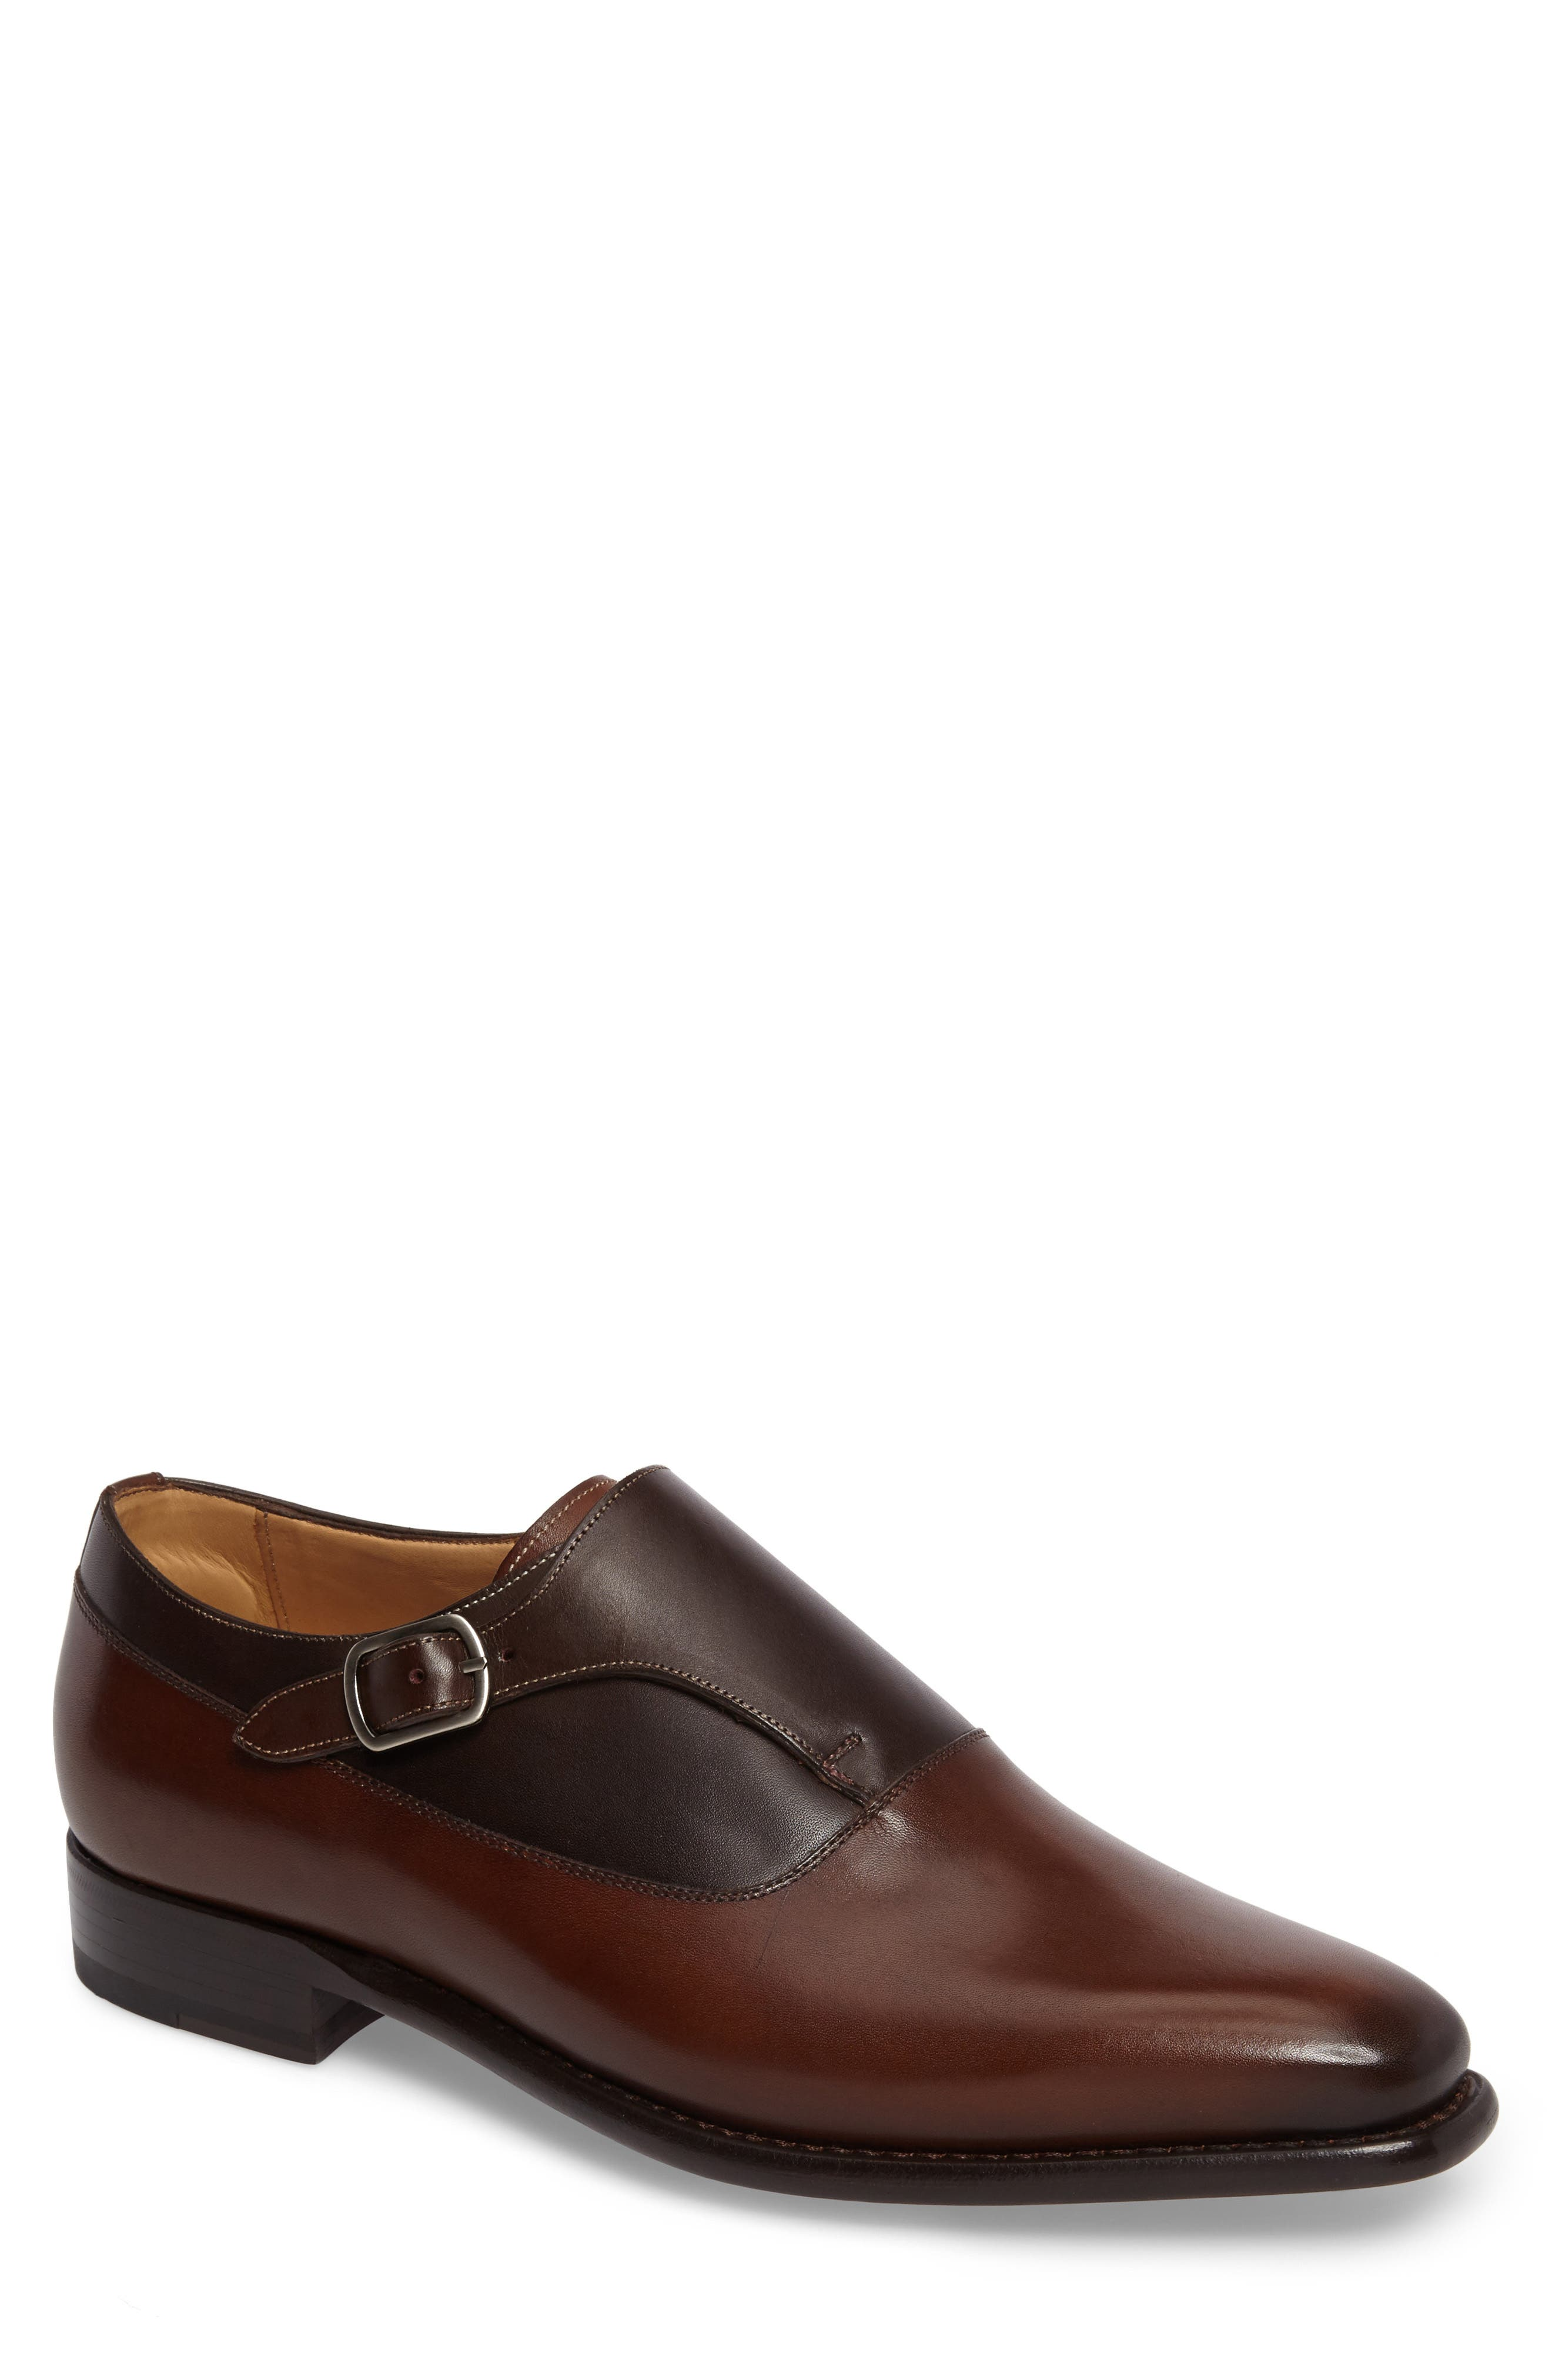 Alternate Image 1 Selected - Mezlan Algar Monk Strap Shoe (Men)